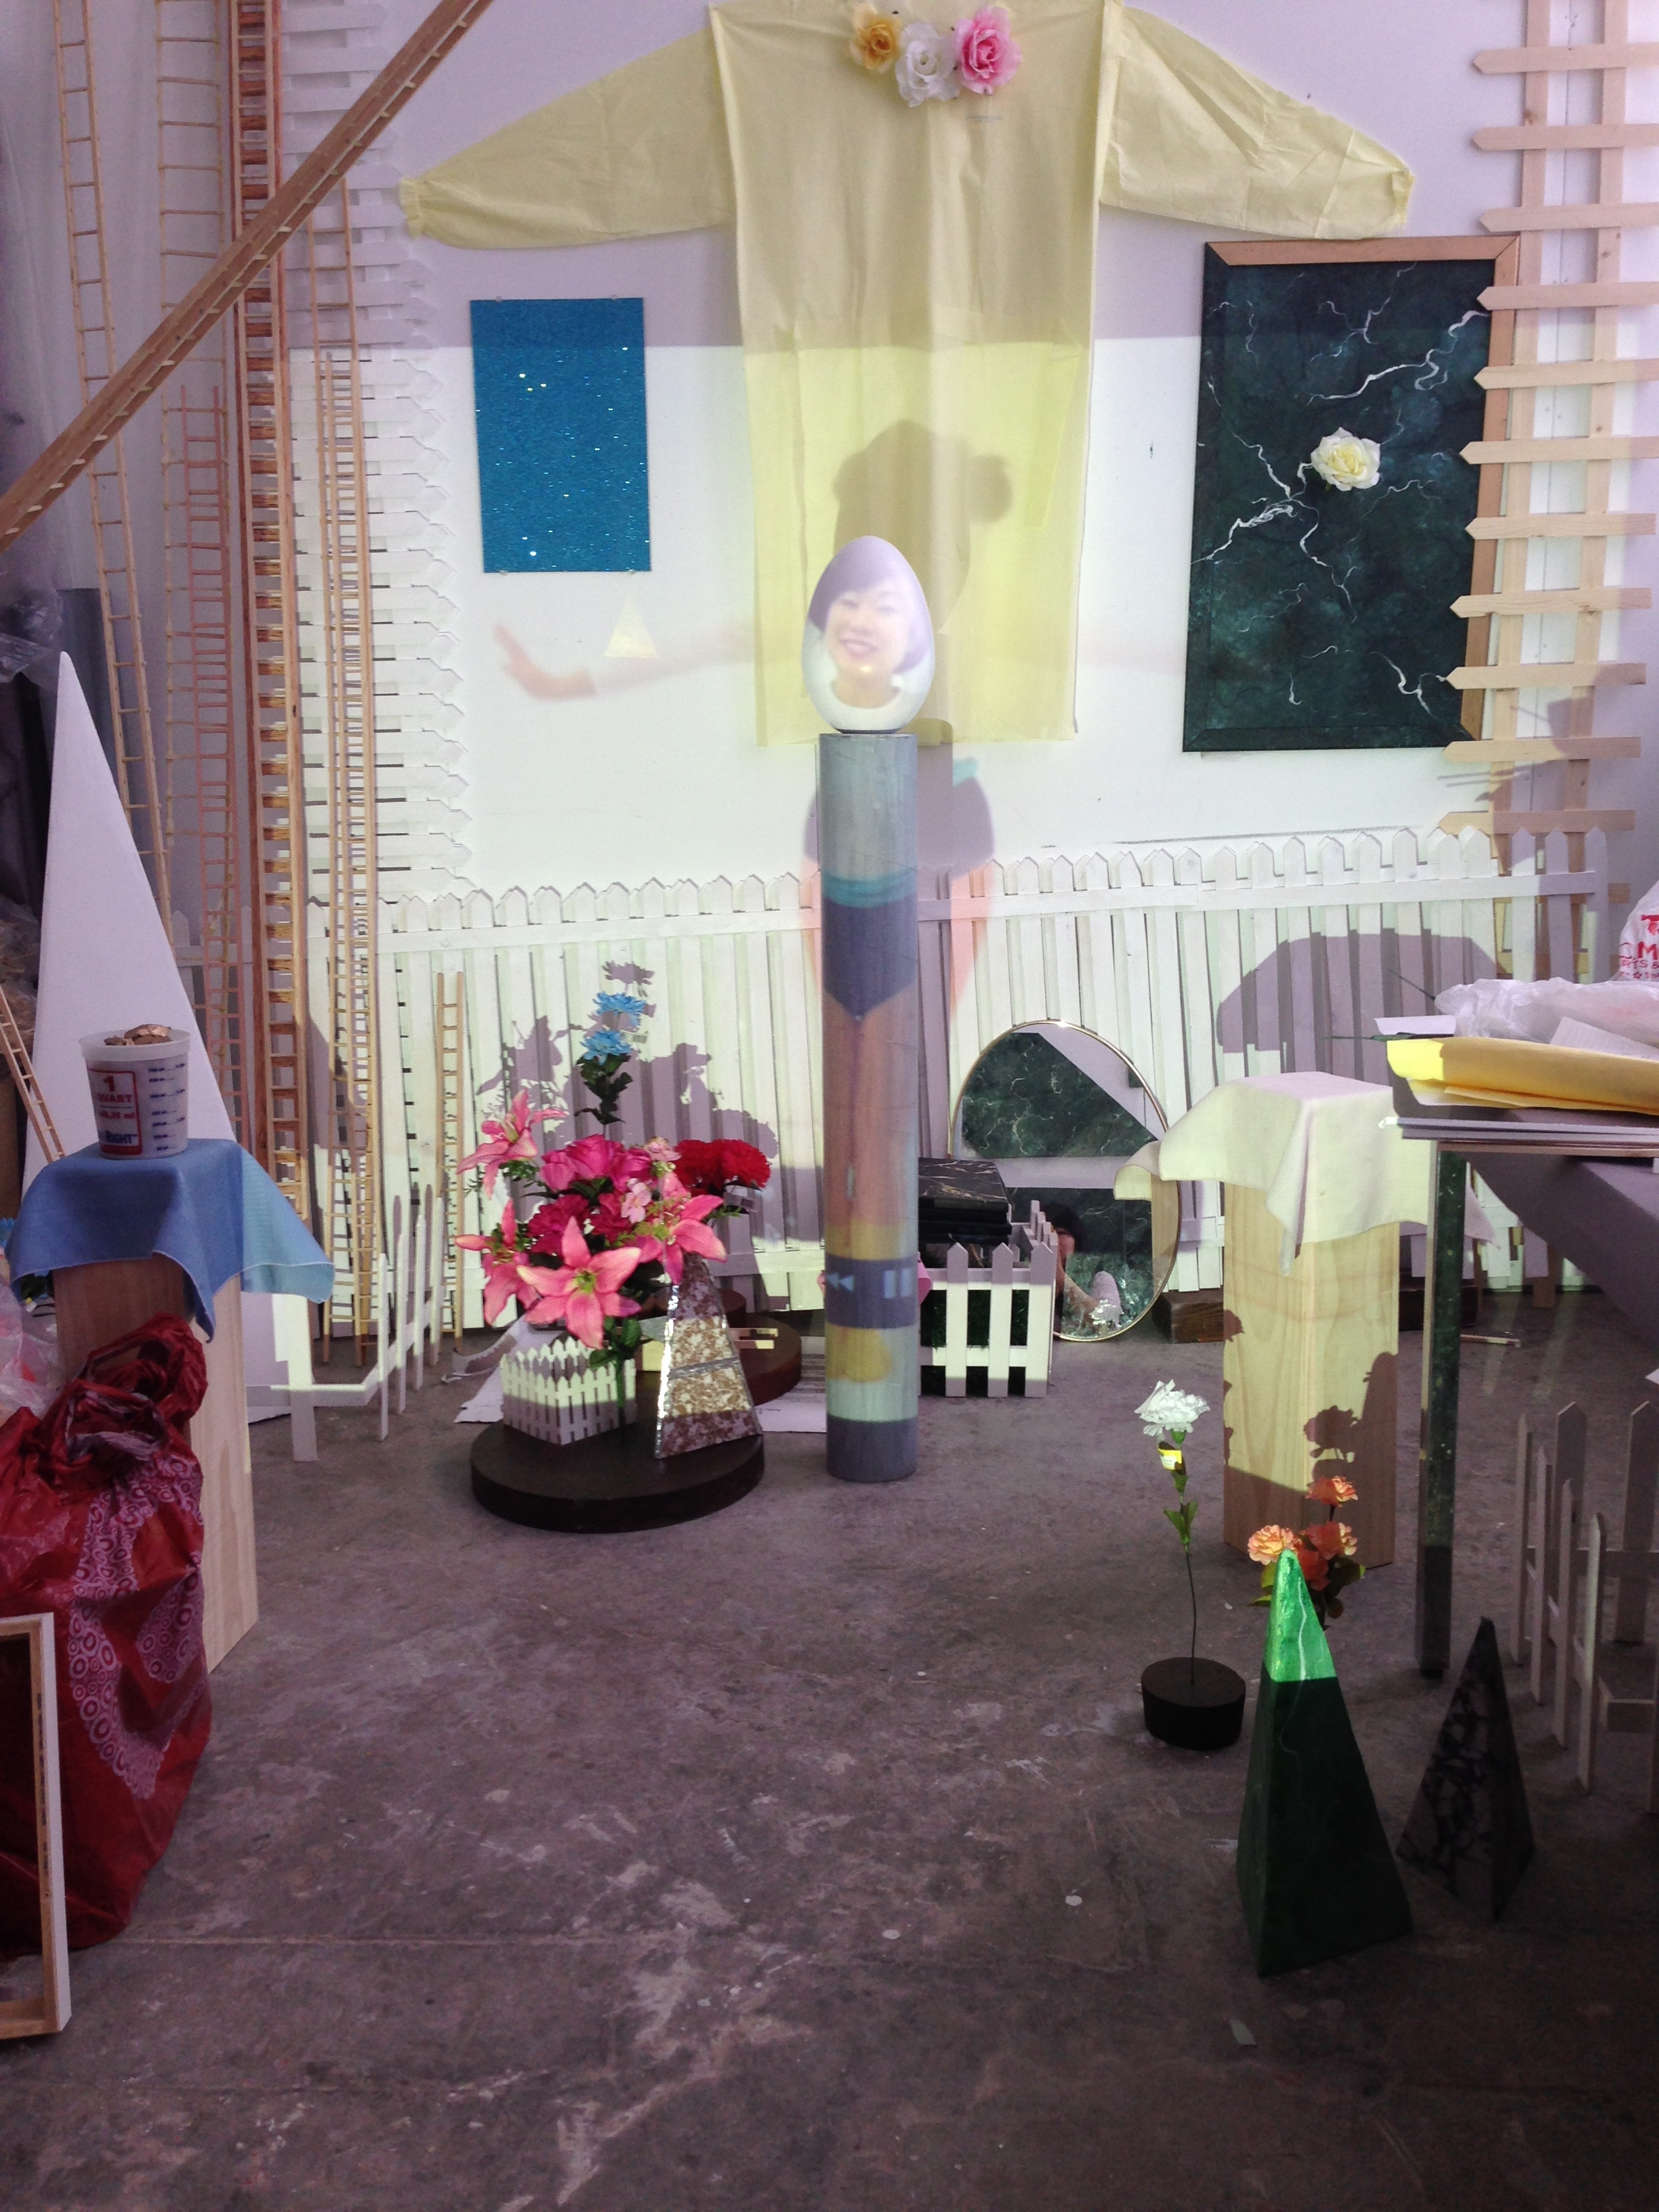 Connie Wong's studio / Ithaca, New York / Full view